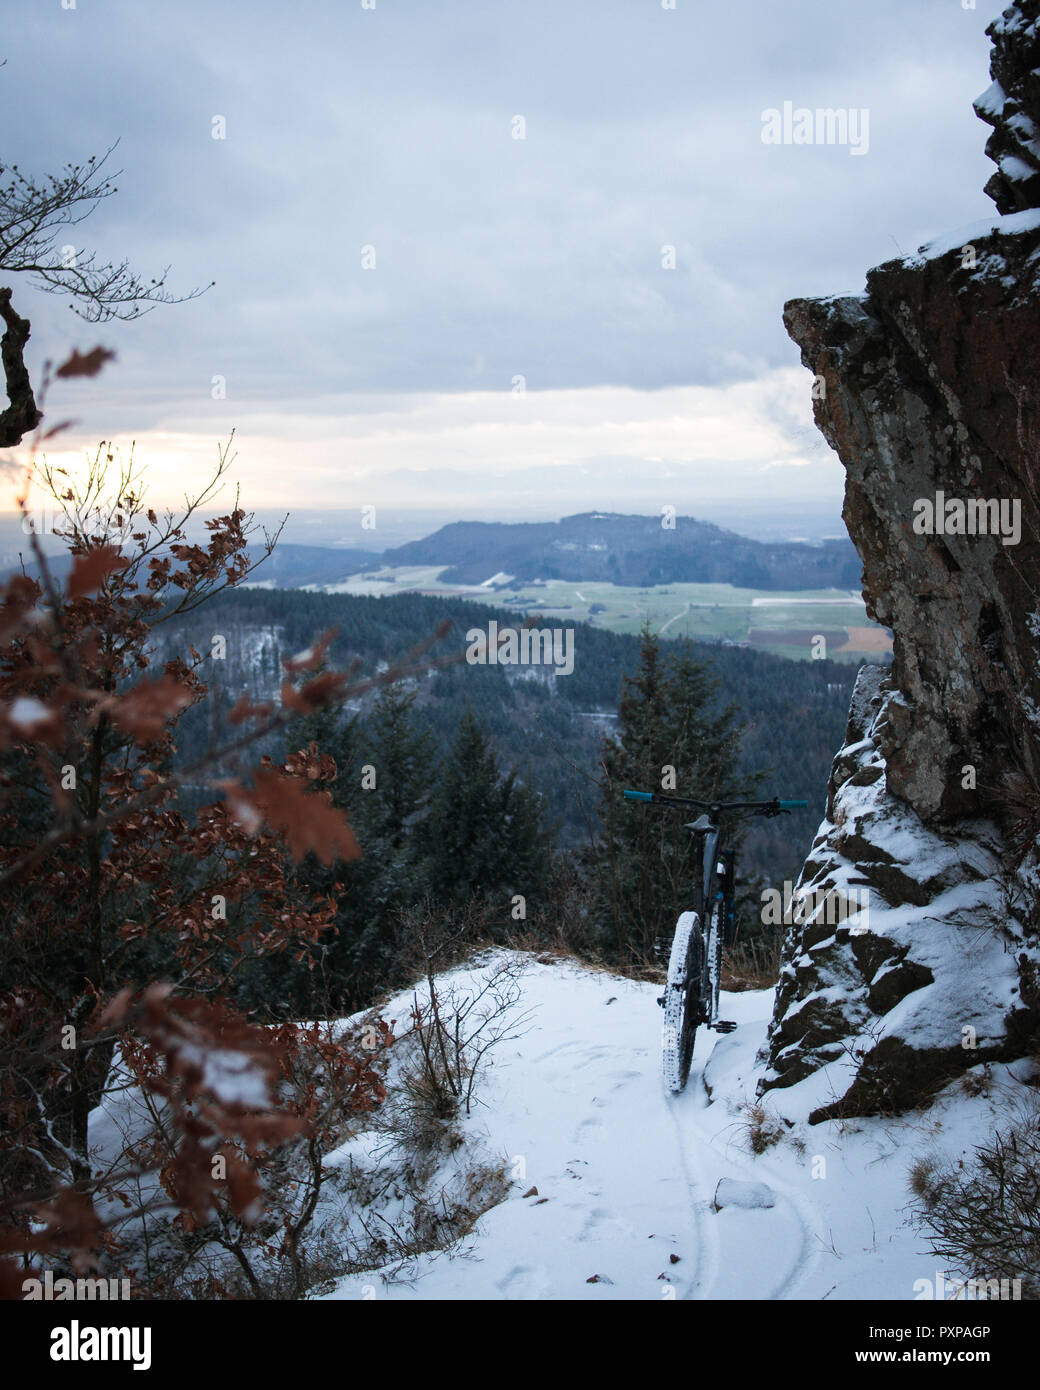 trail covered by snow and a mountain bike. in front of winter landscape on a mountain under a rock. focus on mtb. Black Forest, Germany - Stock Image